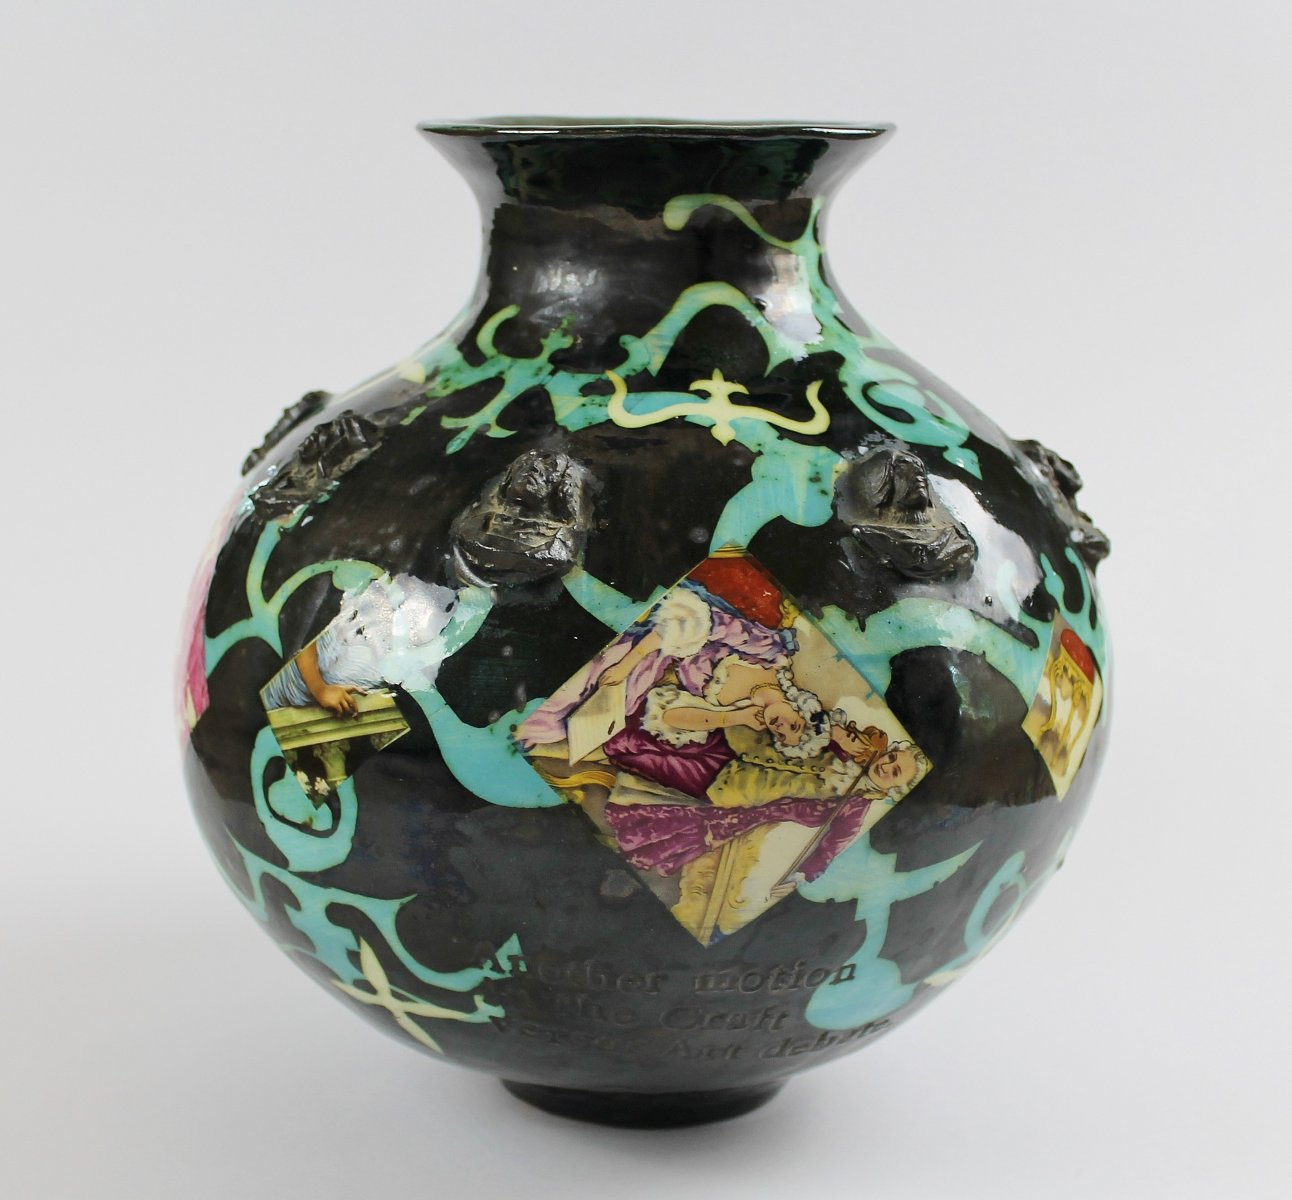 Grayson perry ra pottery for sale original artwork artist another motion in the craft versus art debate grayson perry reviewsmspy